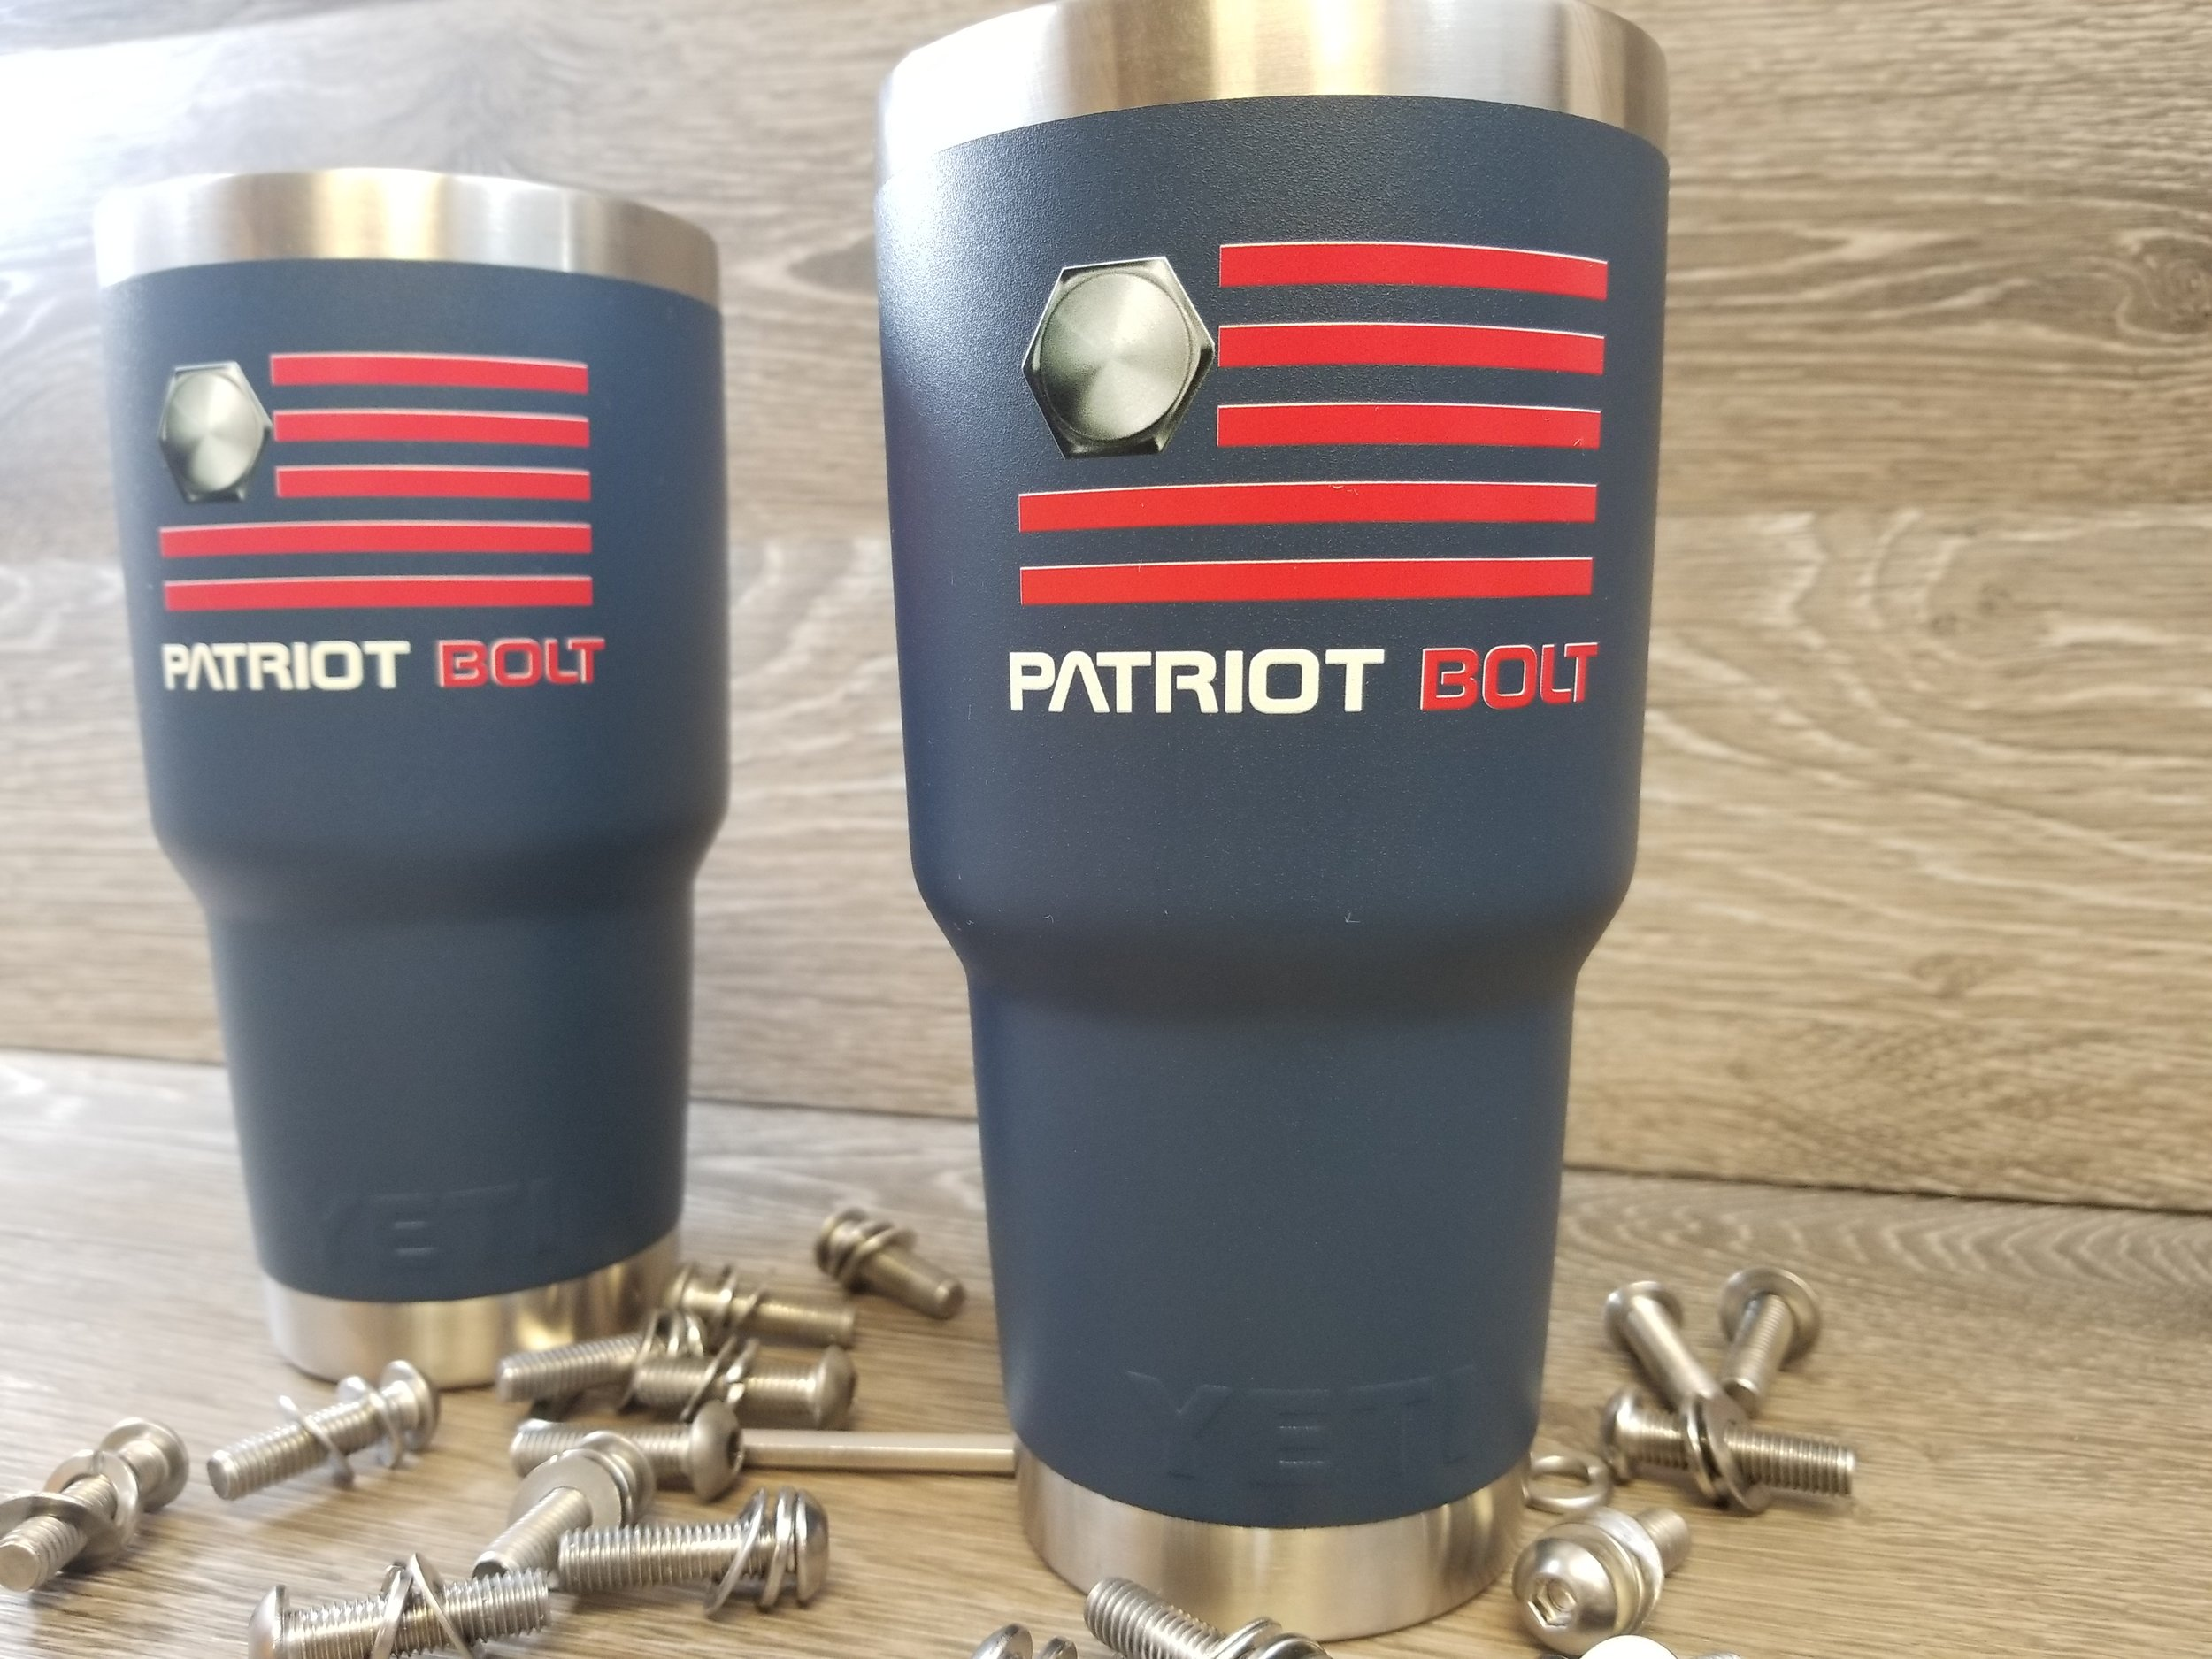 Branded Tumblers - Direct Print on Tumblers - Branded Marketing Material - Branded Giveaways - Corporate Identity Projects - Branding Projects from Engrave It Houston